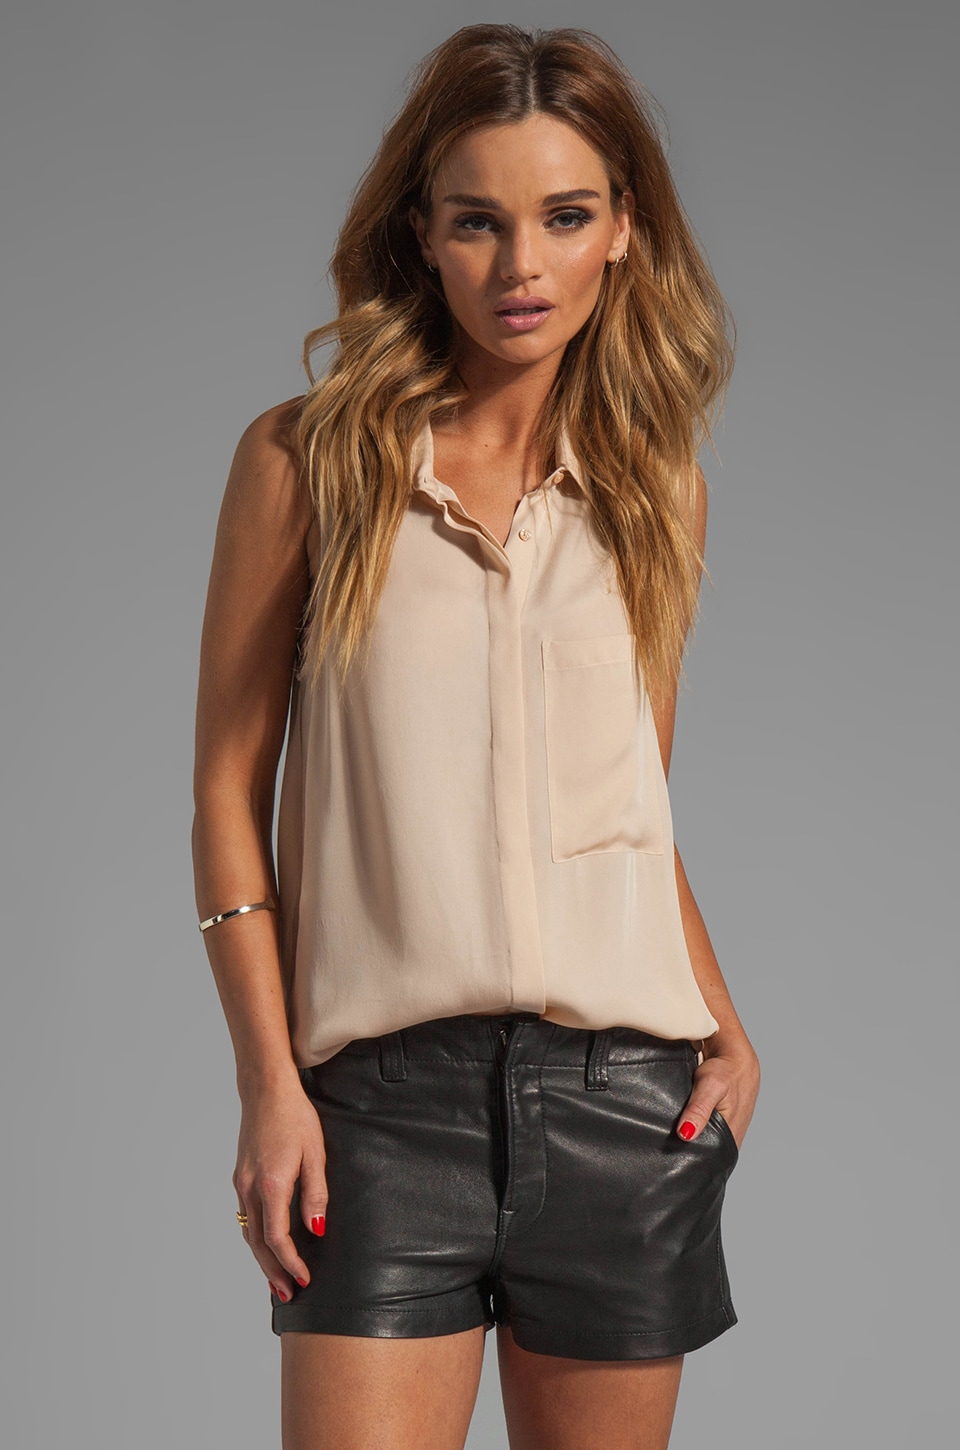 Haute Hippie Sleeveless Button Down Blouse in Vanilla